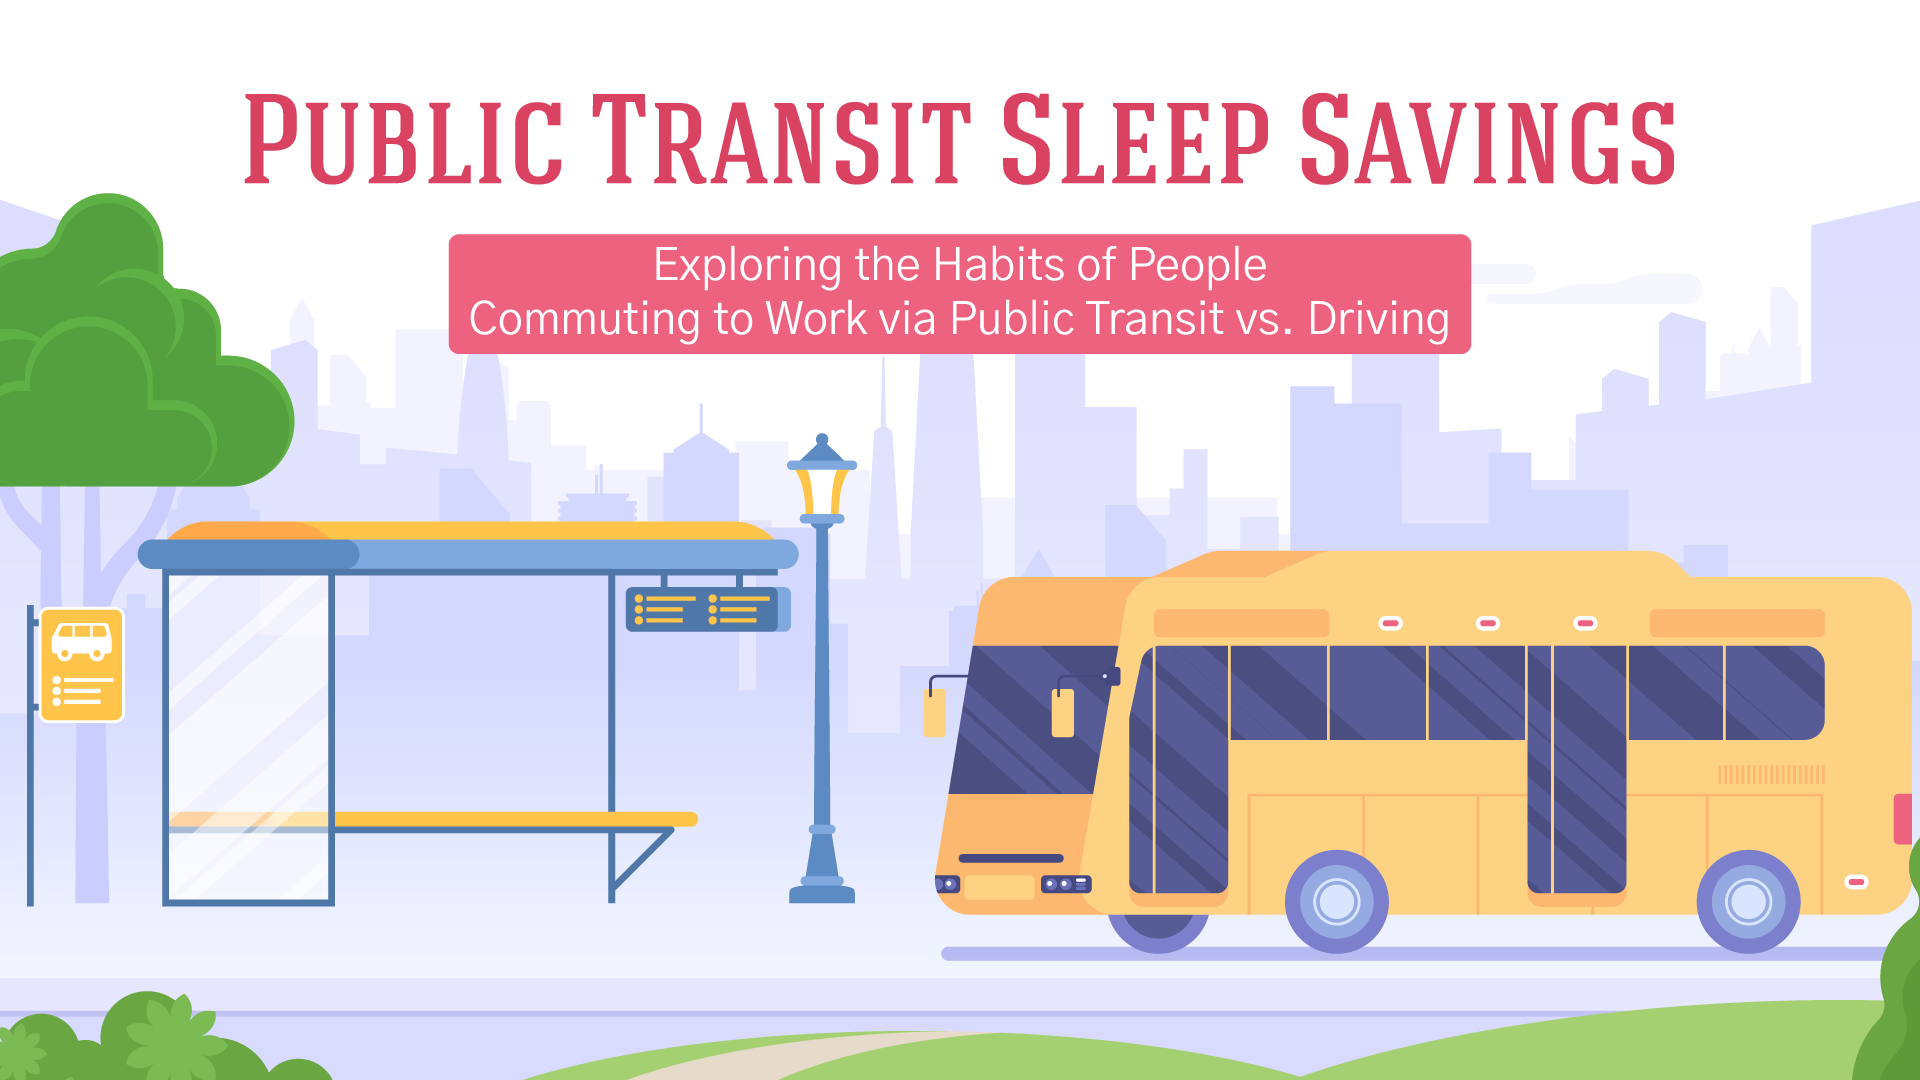 Exploring the Habits of People Commuting to Work via Public Transit vs. Driving